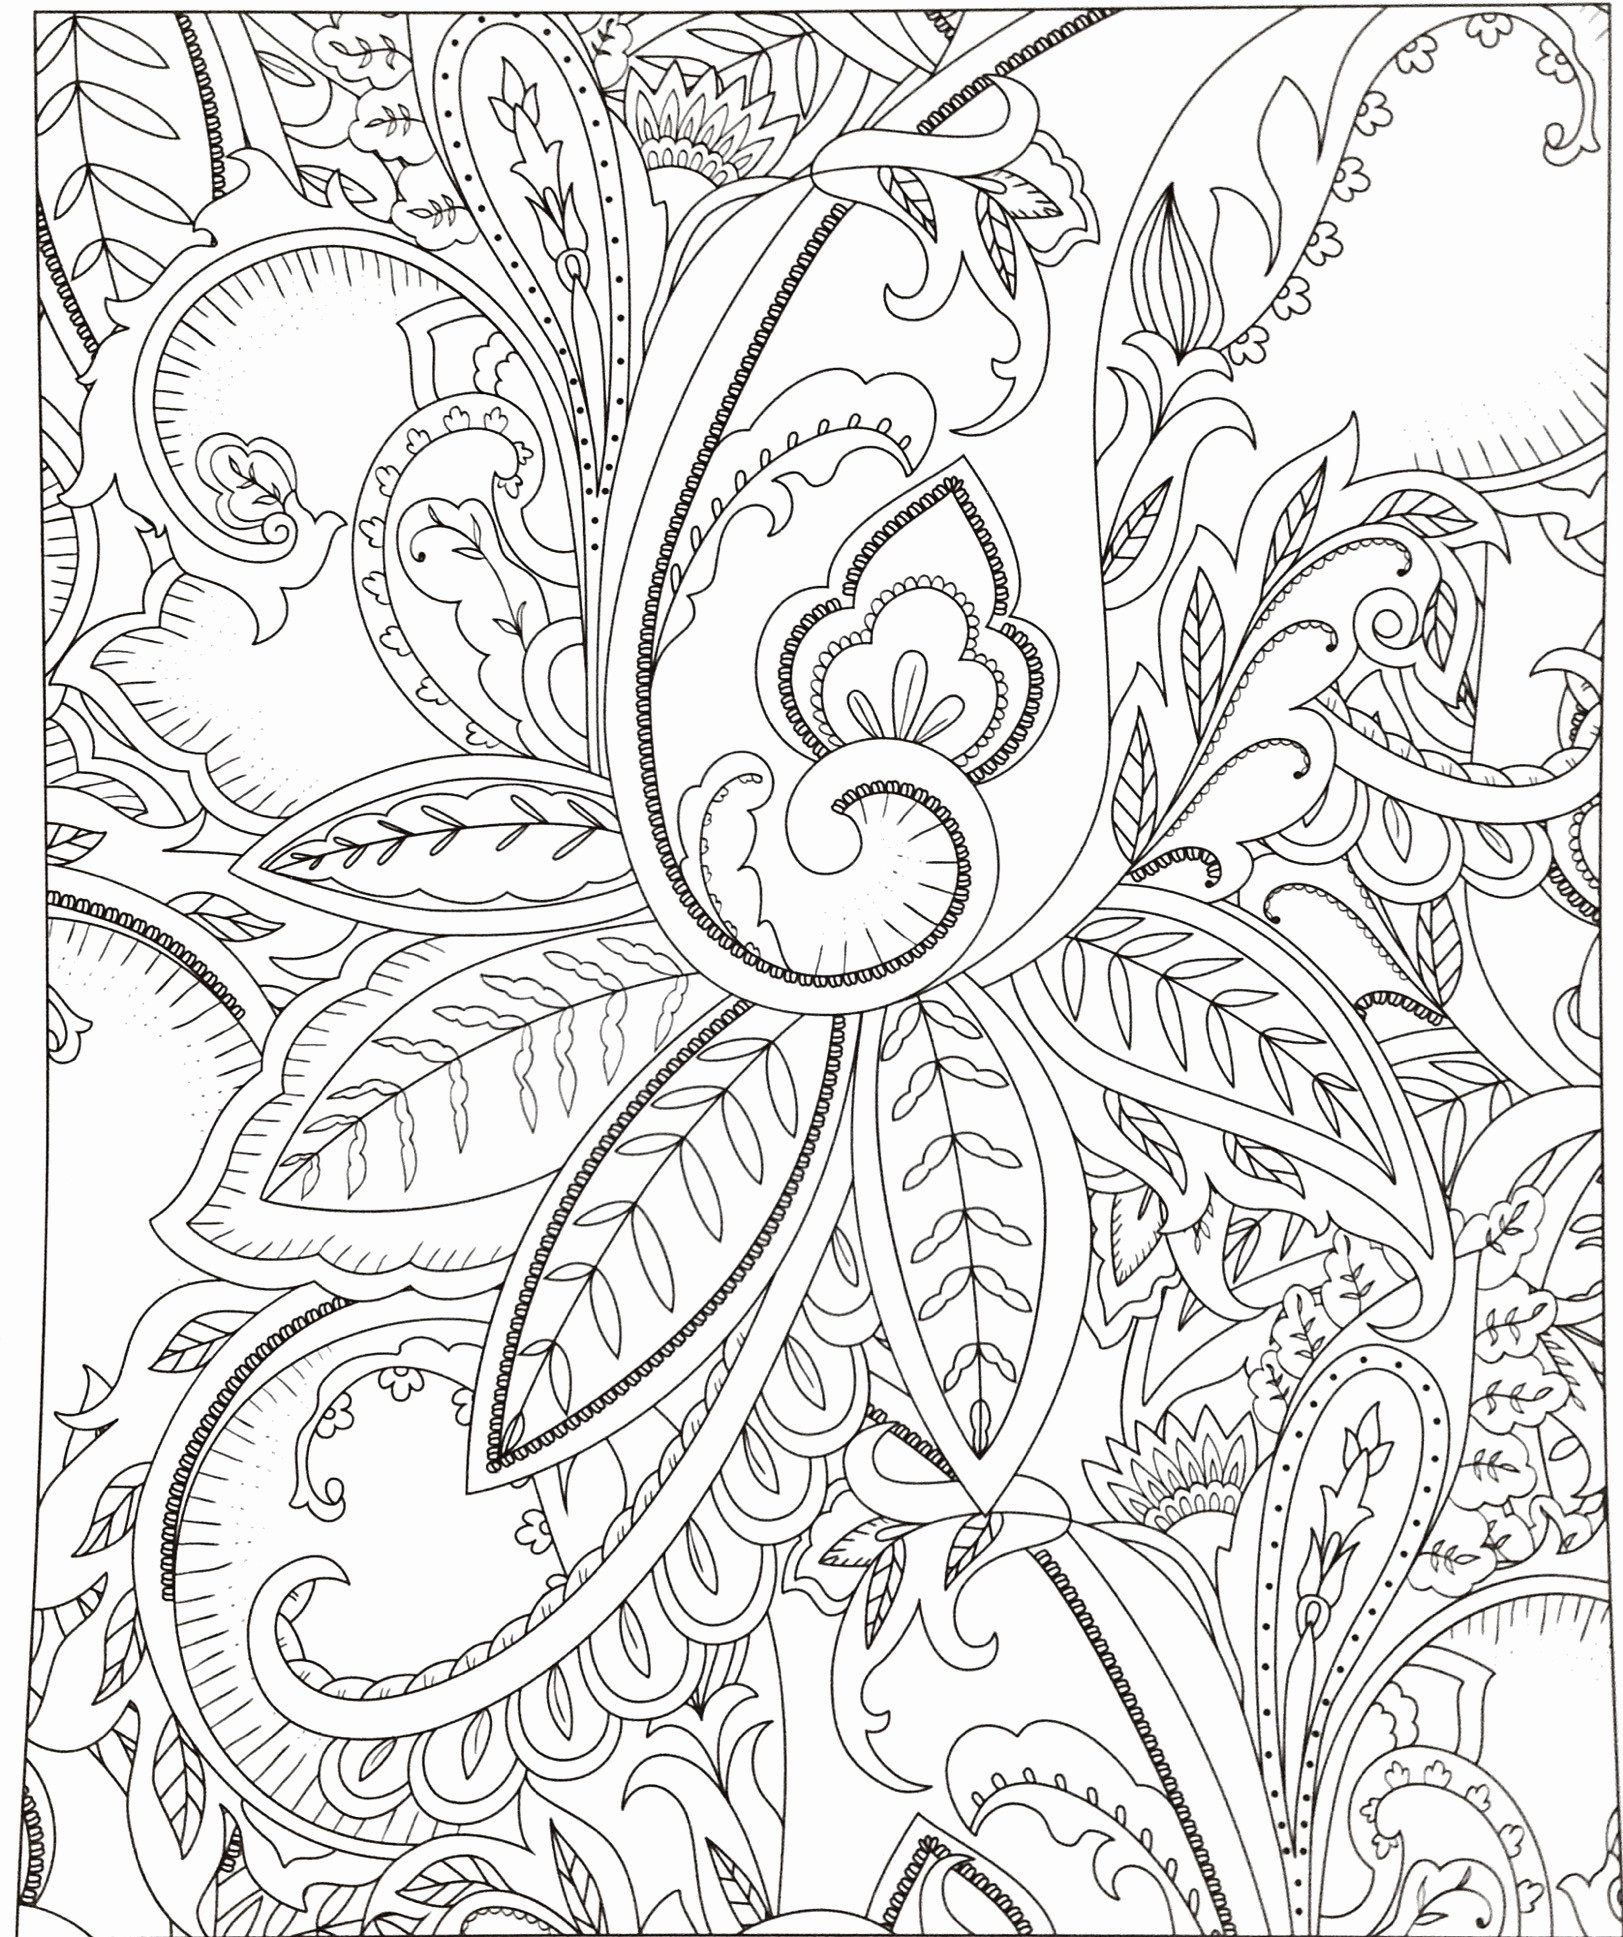 mindware coloring pages free Collection-Plant Cycle Coloring Page Printed Coloring Sheets Popular Printable Home Coloring Pages Best 17-f